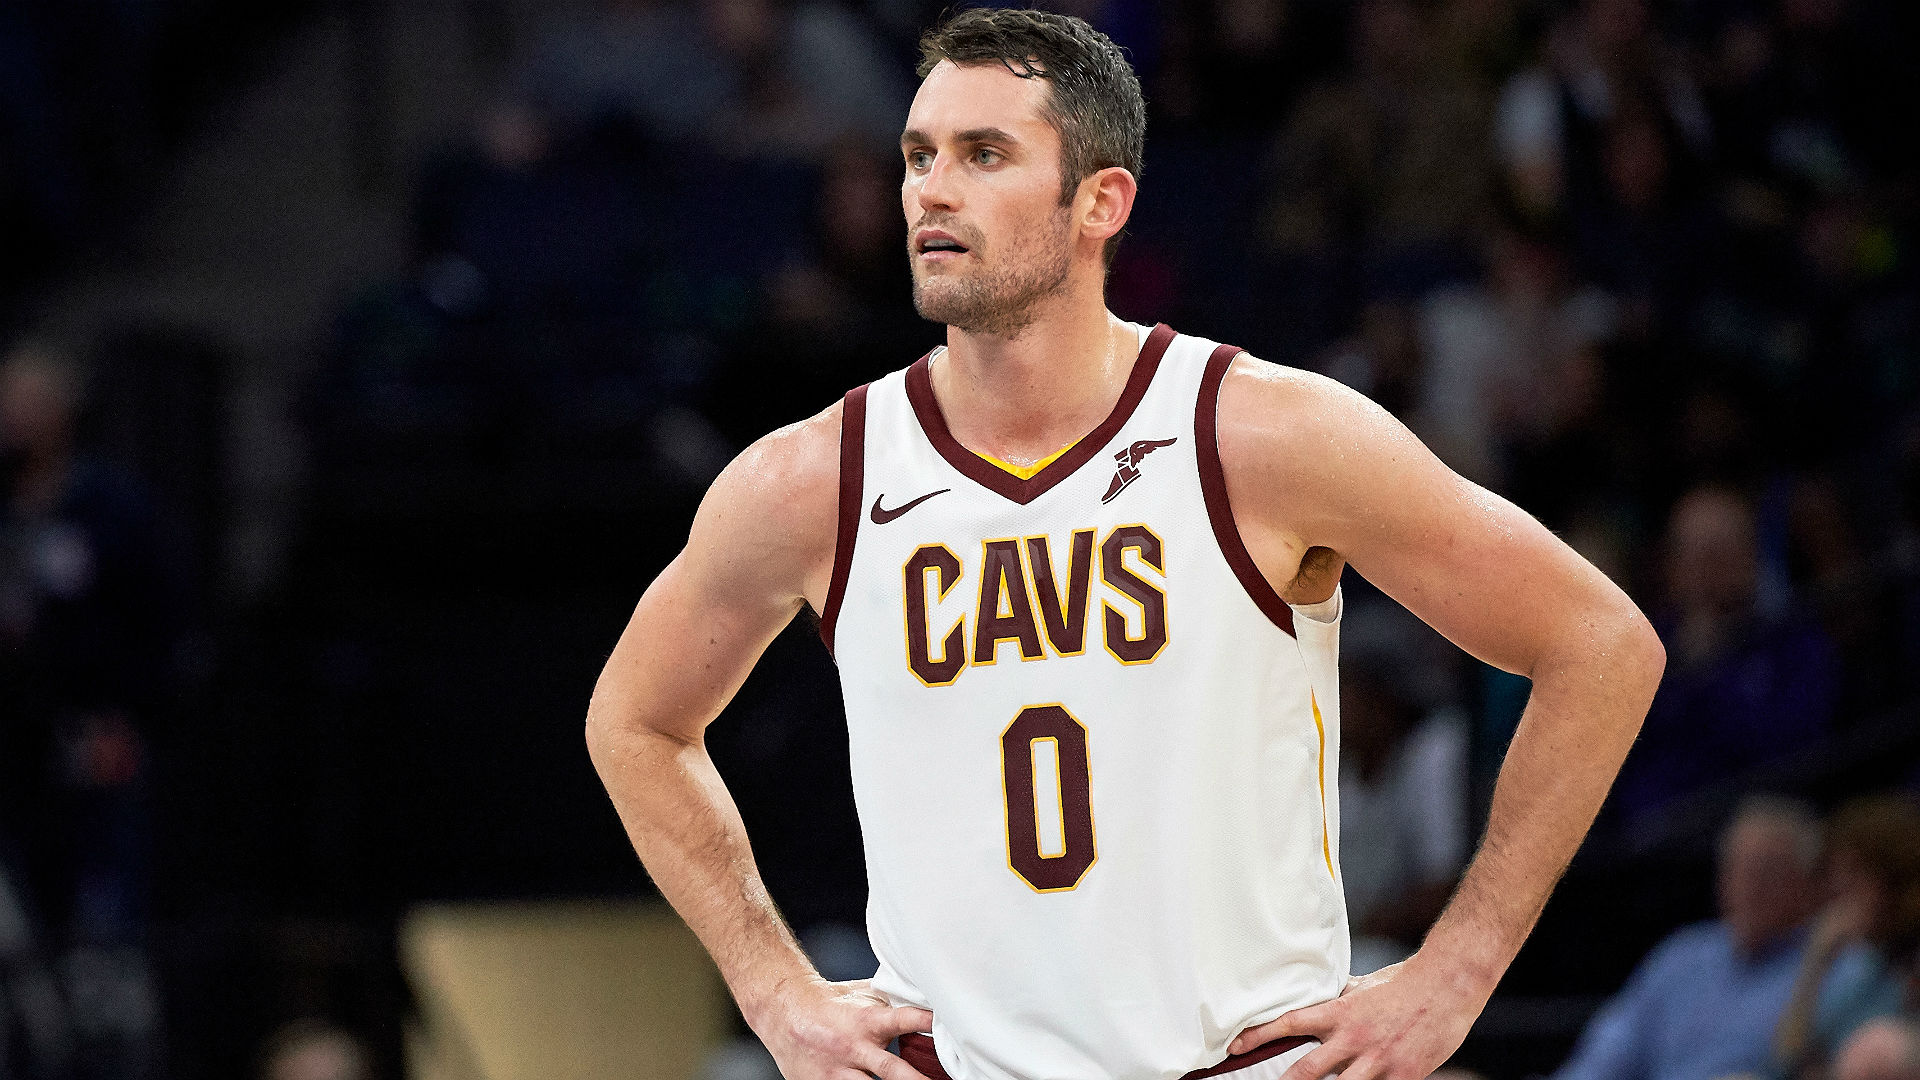 Kevin Love injury update: Cavaliers forward could return Friday night against Wizards